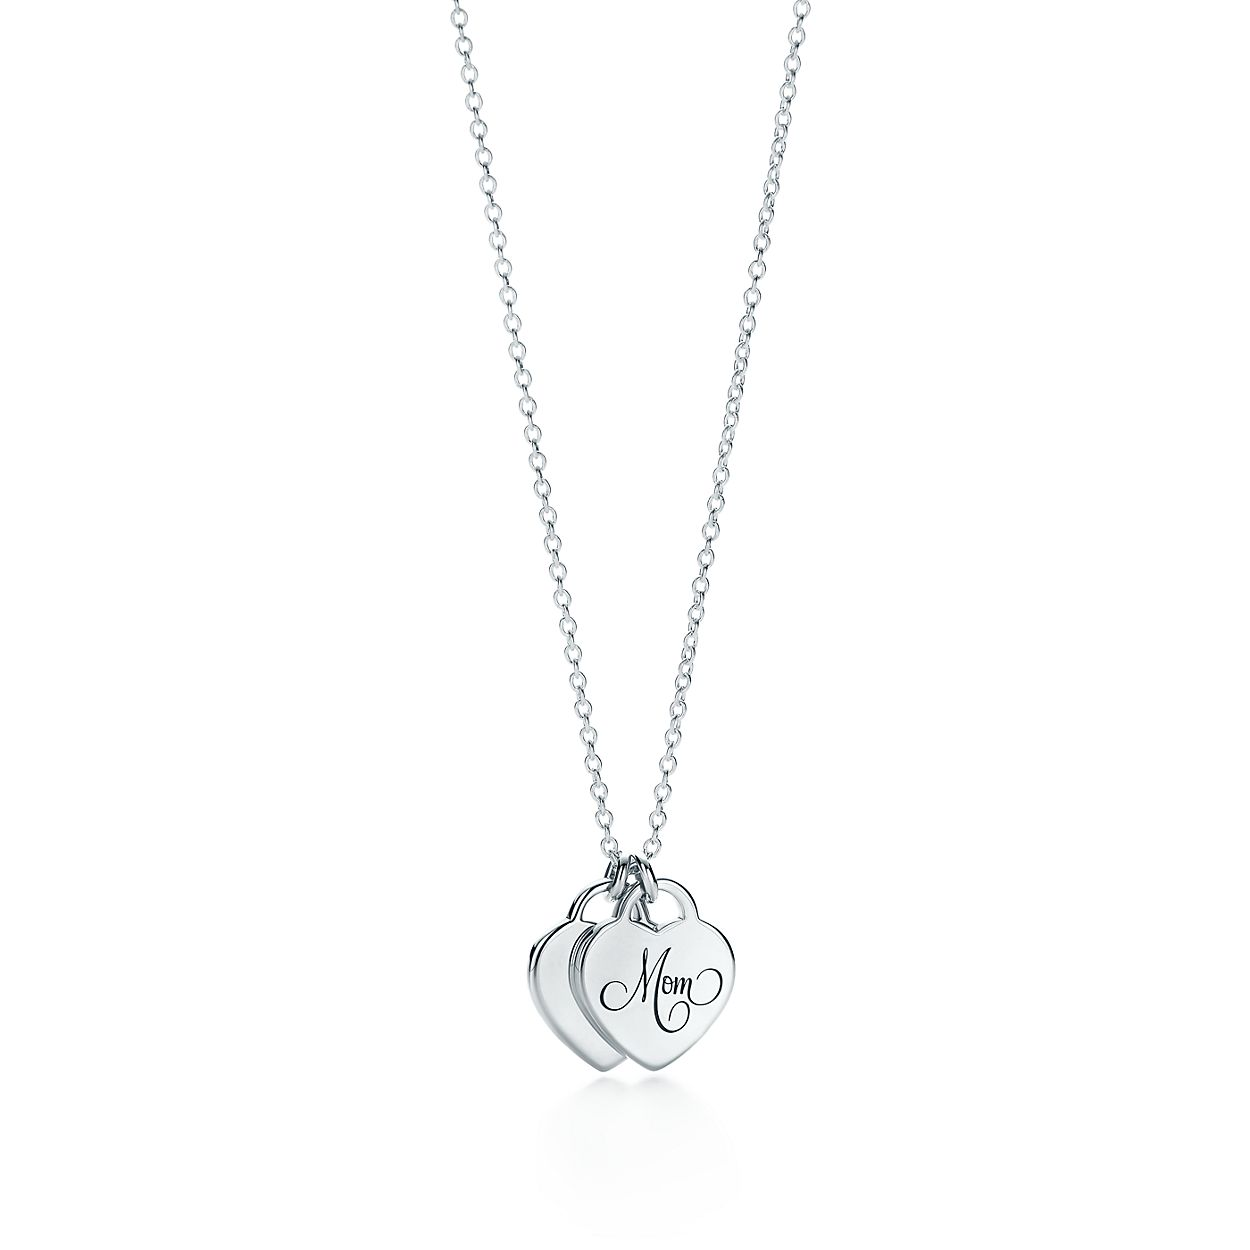 Tiffany hearts mom heart tag duo pendant in sterling silver mini tiffany heartsmom heart tagbrduo pendant mozeypictures Image collections